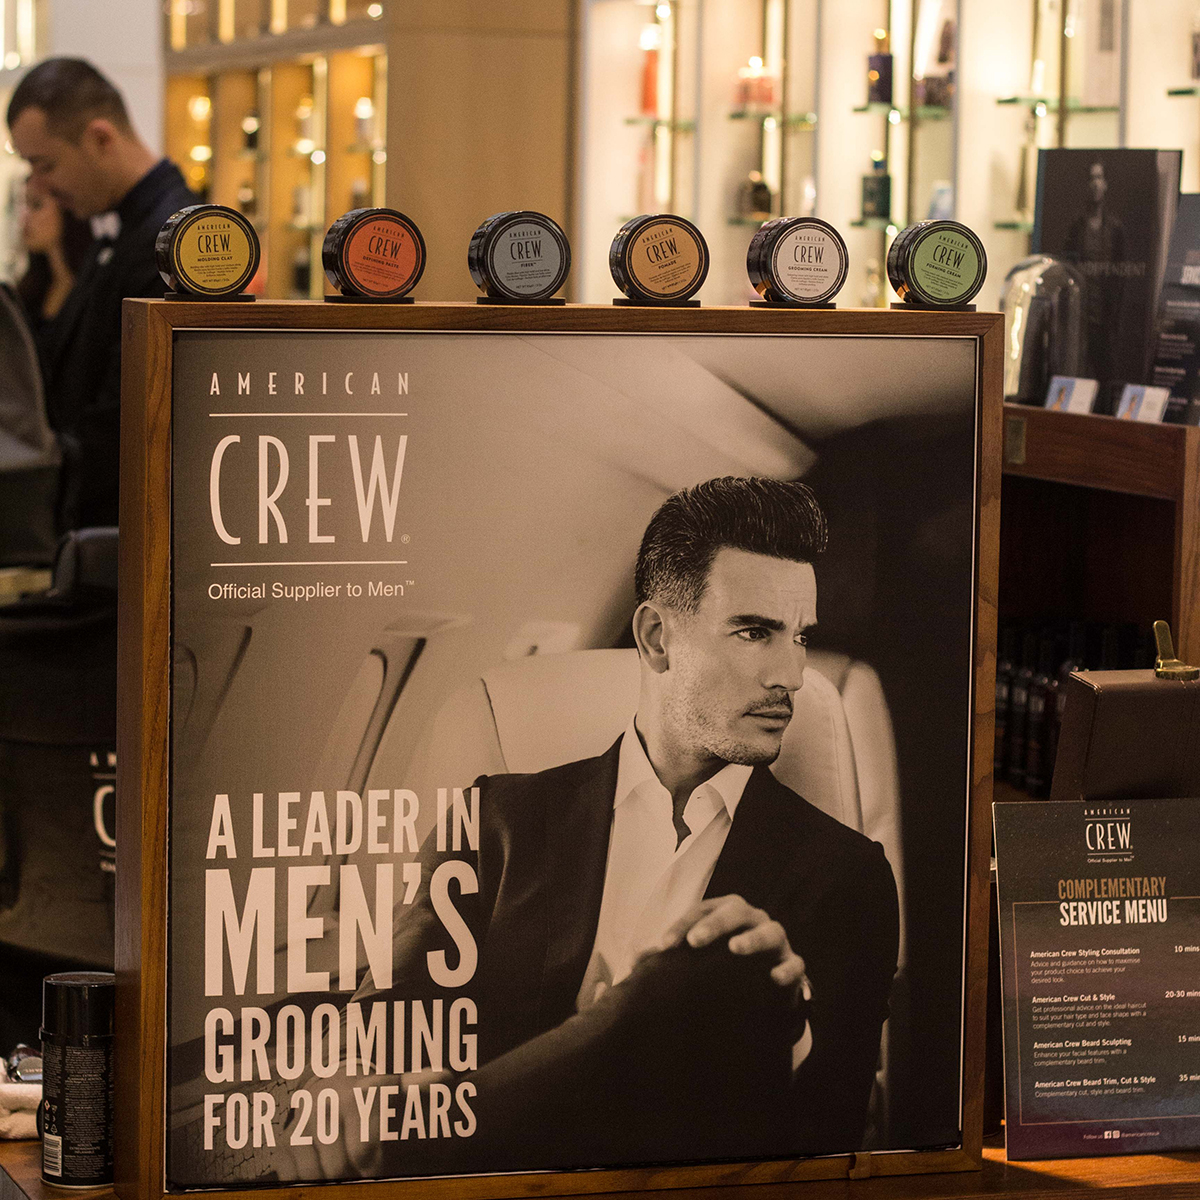 https://www.portersbarbers.co.uk/wp-content/uploads/JOHN-LEWIS-AMERICAN-CREW-3.jpg